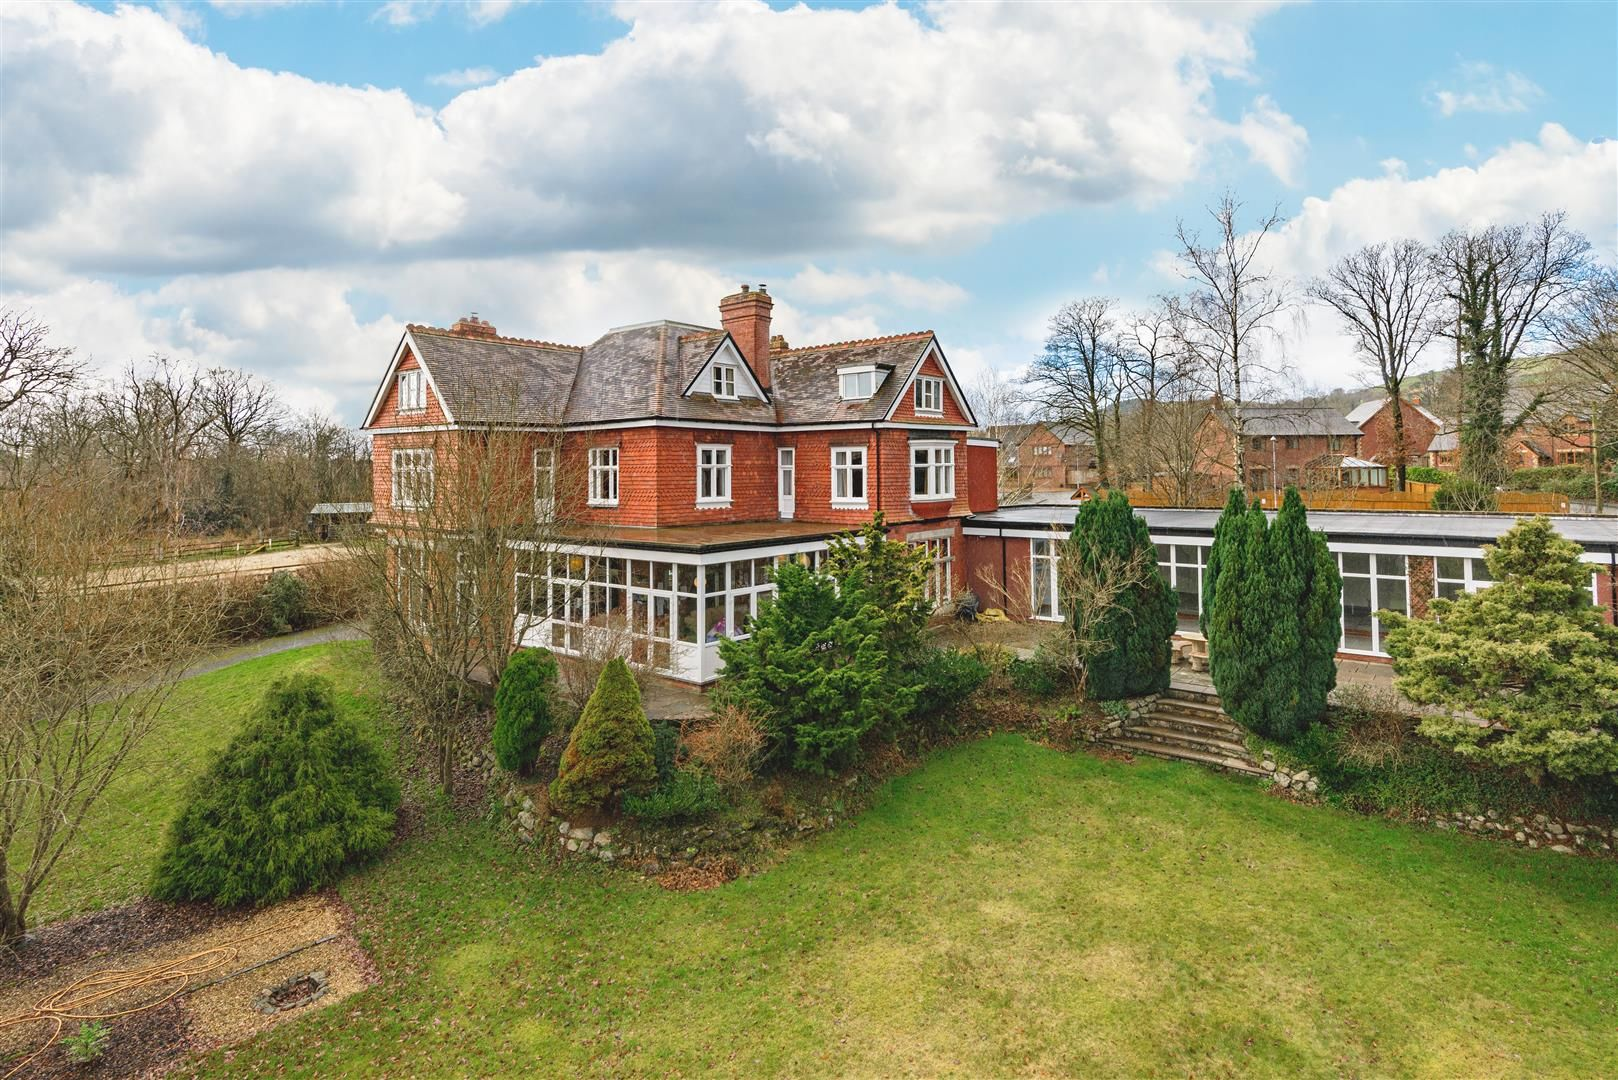 Property photo 1 of 56. Nant Y Groes, Llanyre-4.Jpg